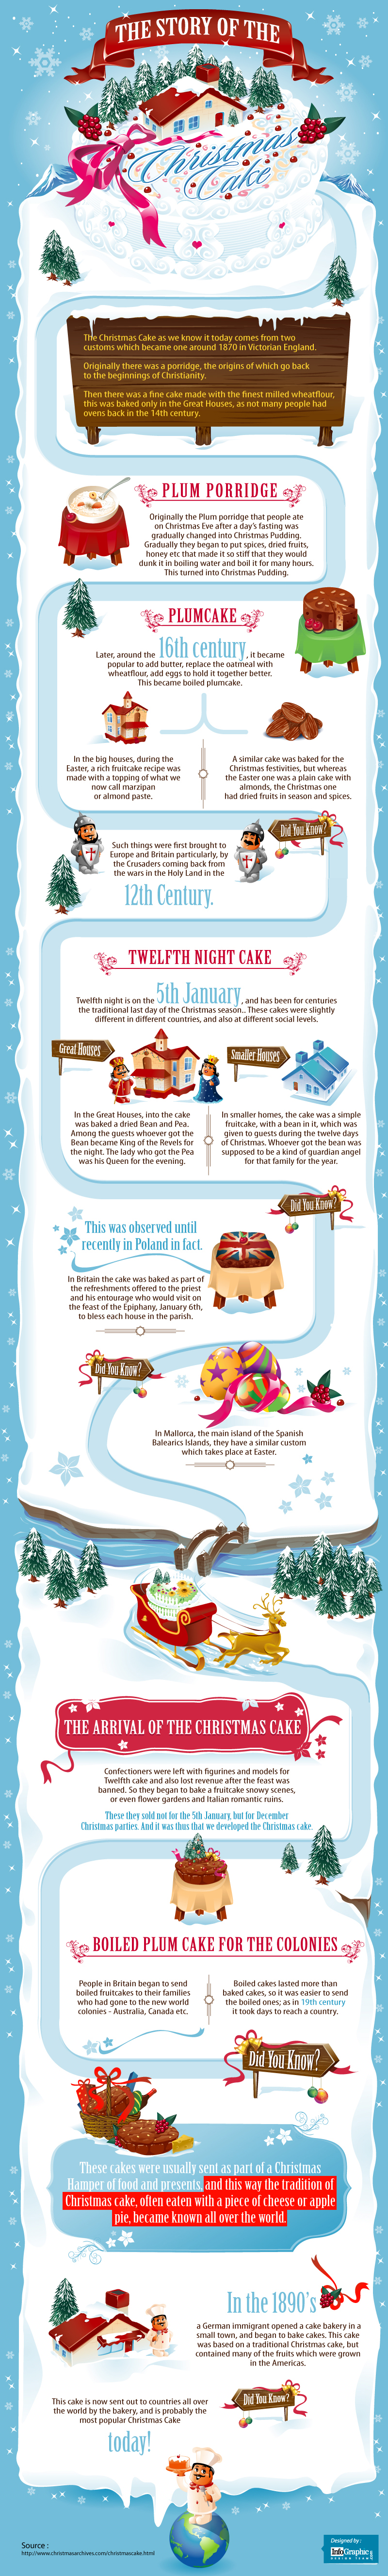 The Story of the Christmas Cake